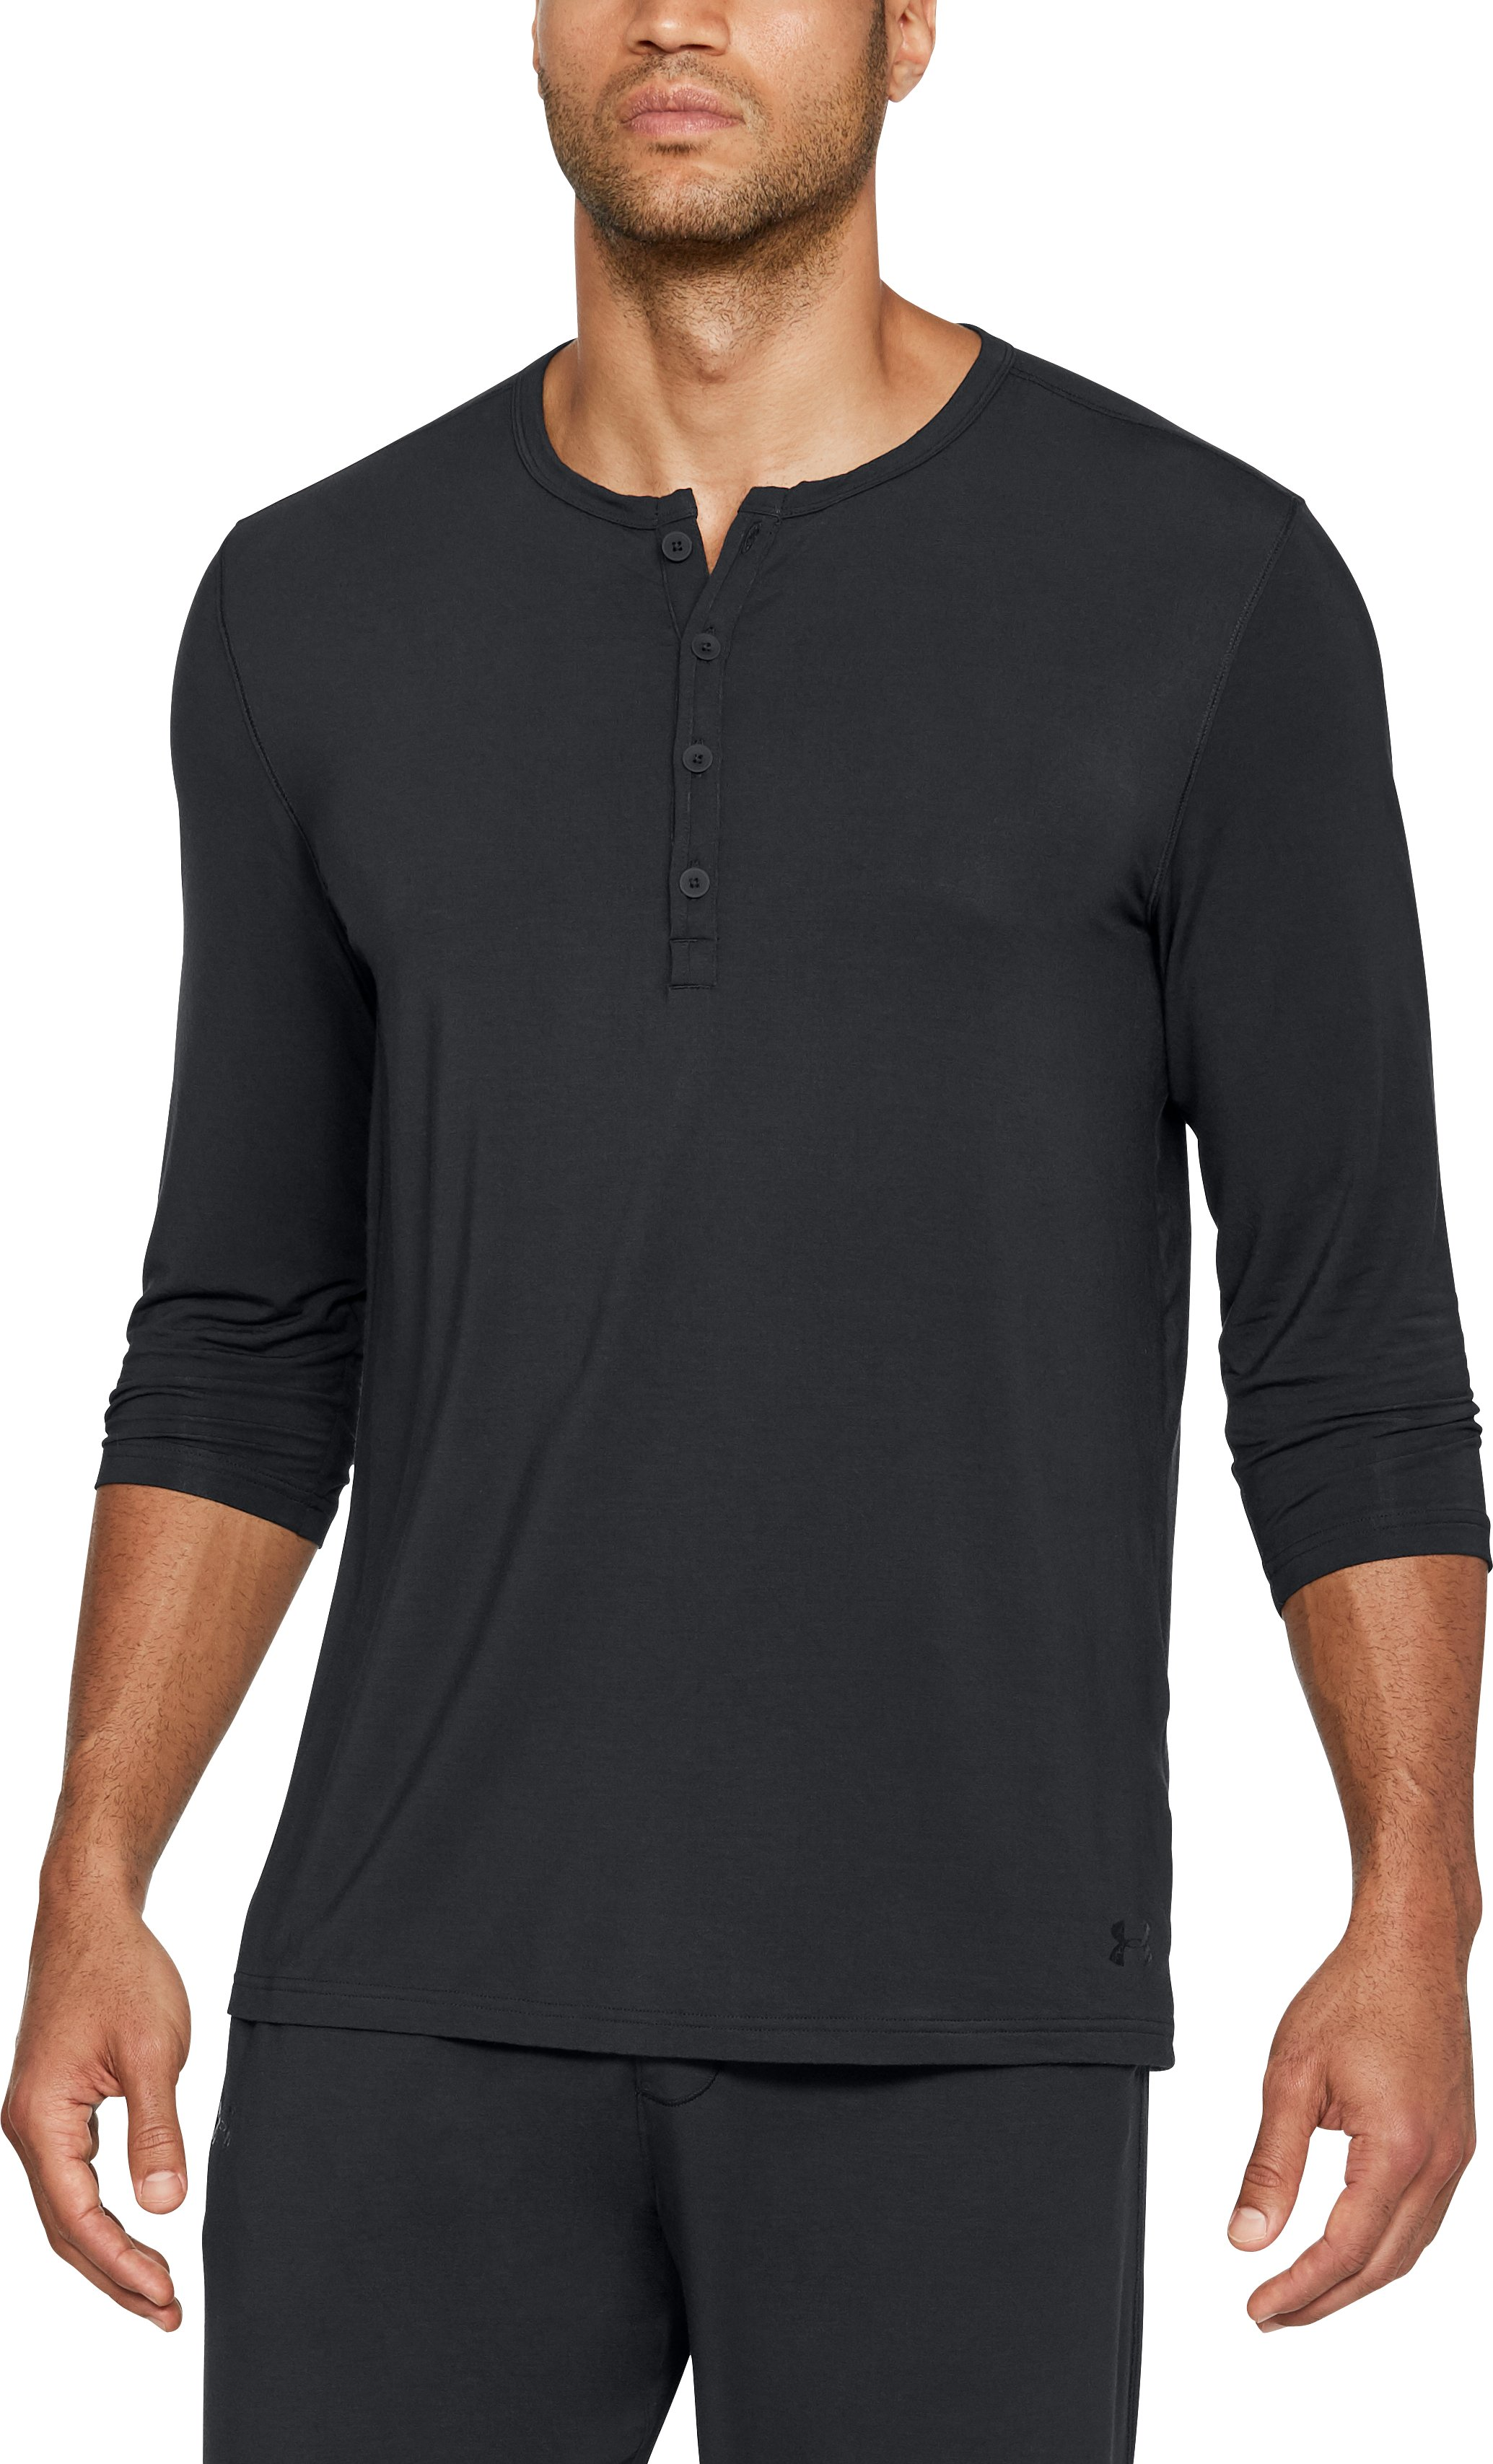 Men's Athlete Recovery Ultra Comfort Sleepwear Henley 4 Colors $99.99